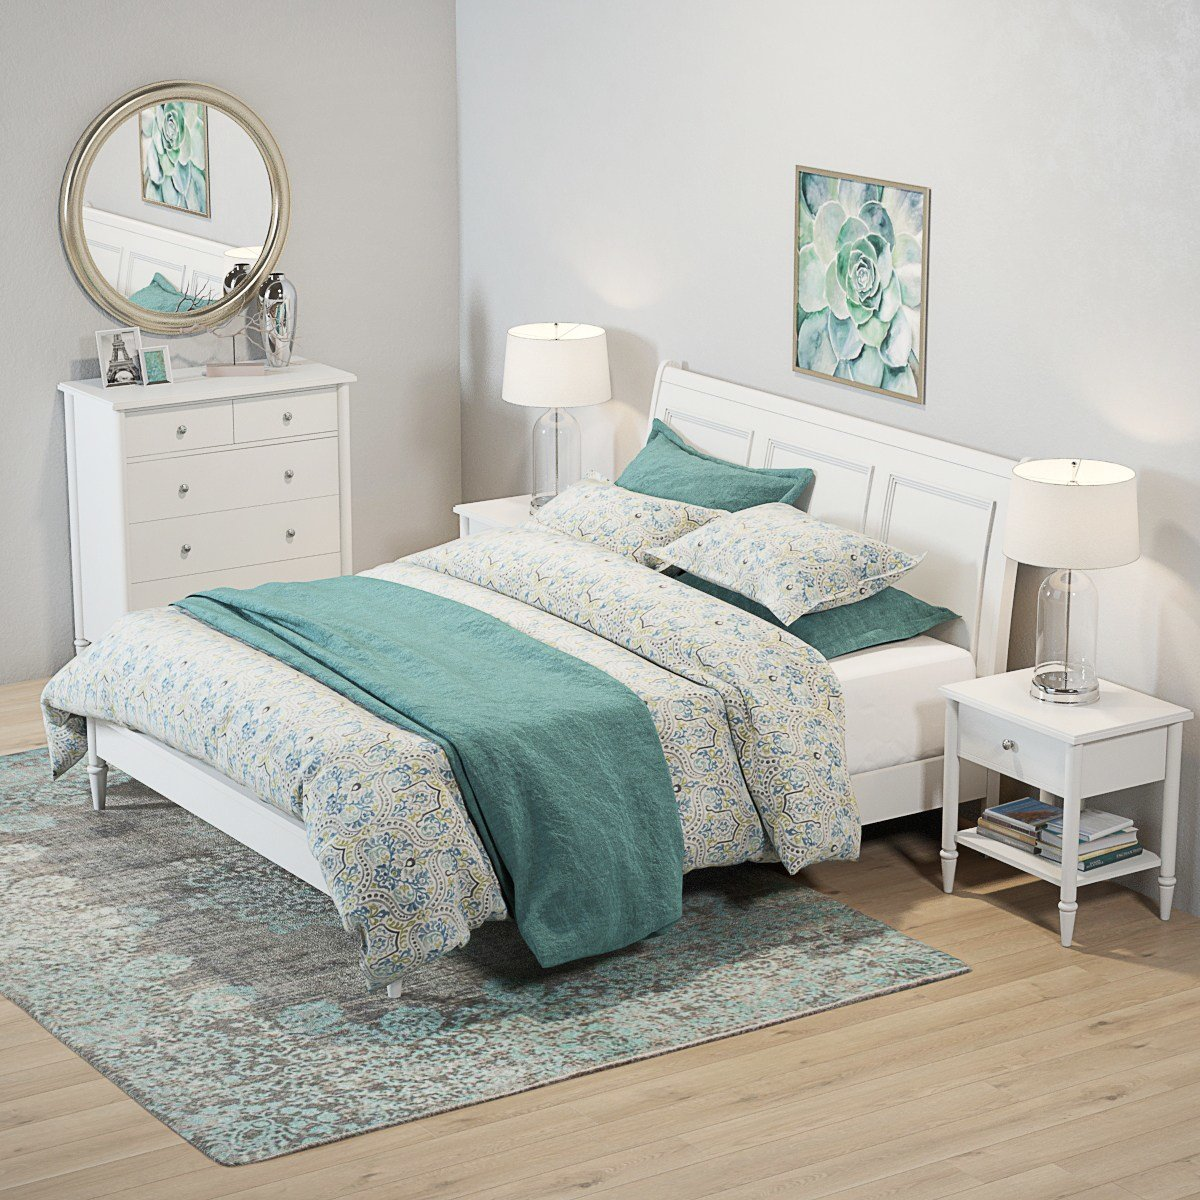 Best Pottery Barn Crosby White Bedroom Set With Decor With Pictures